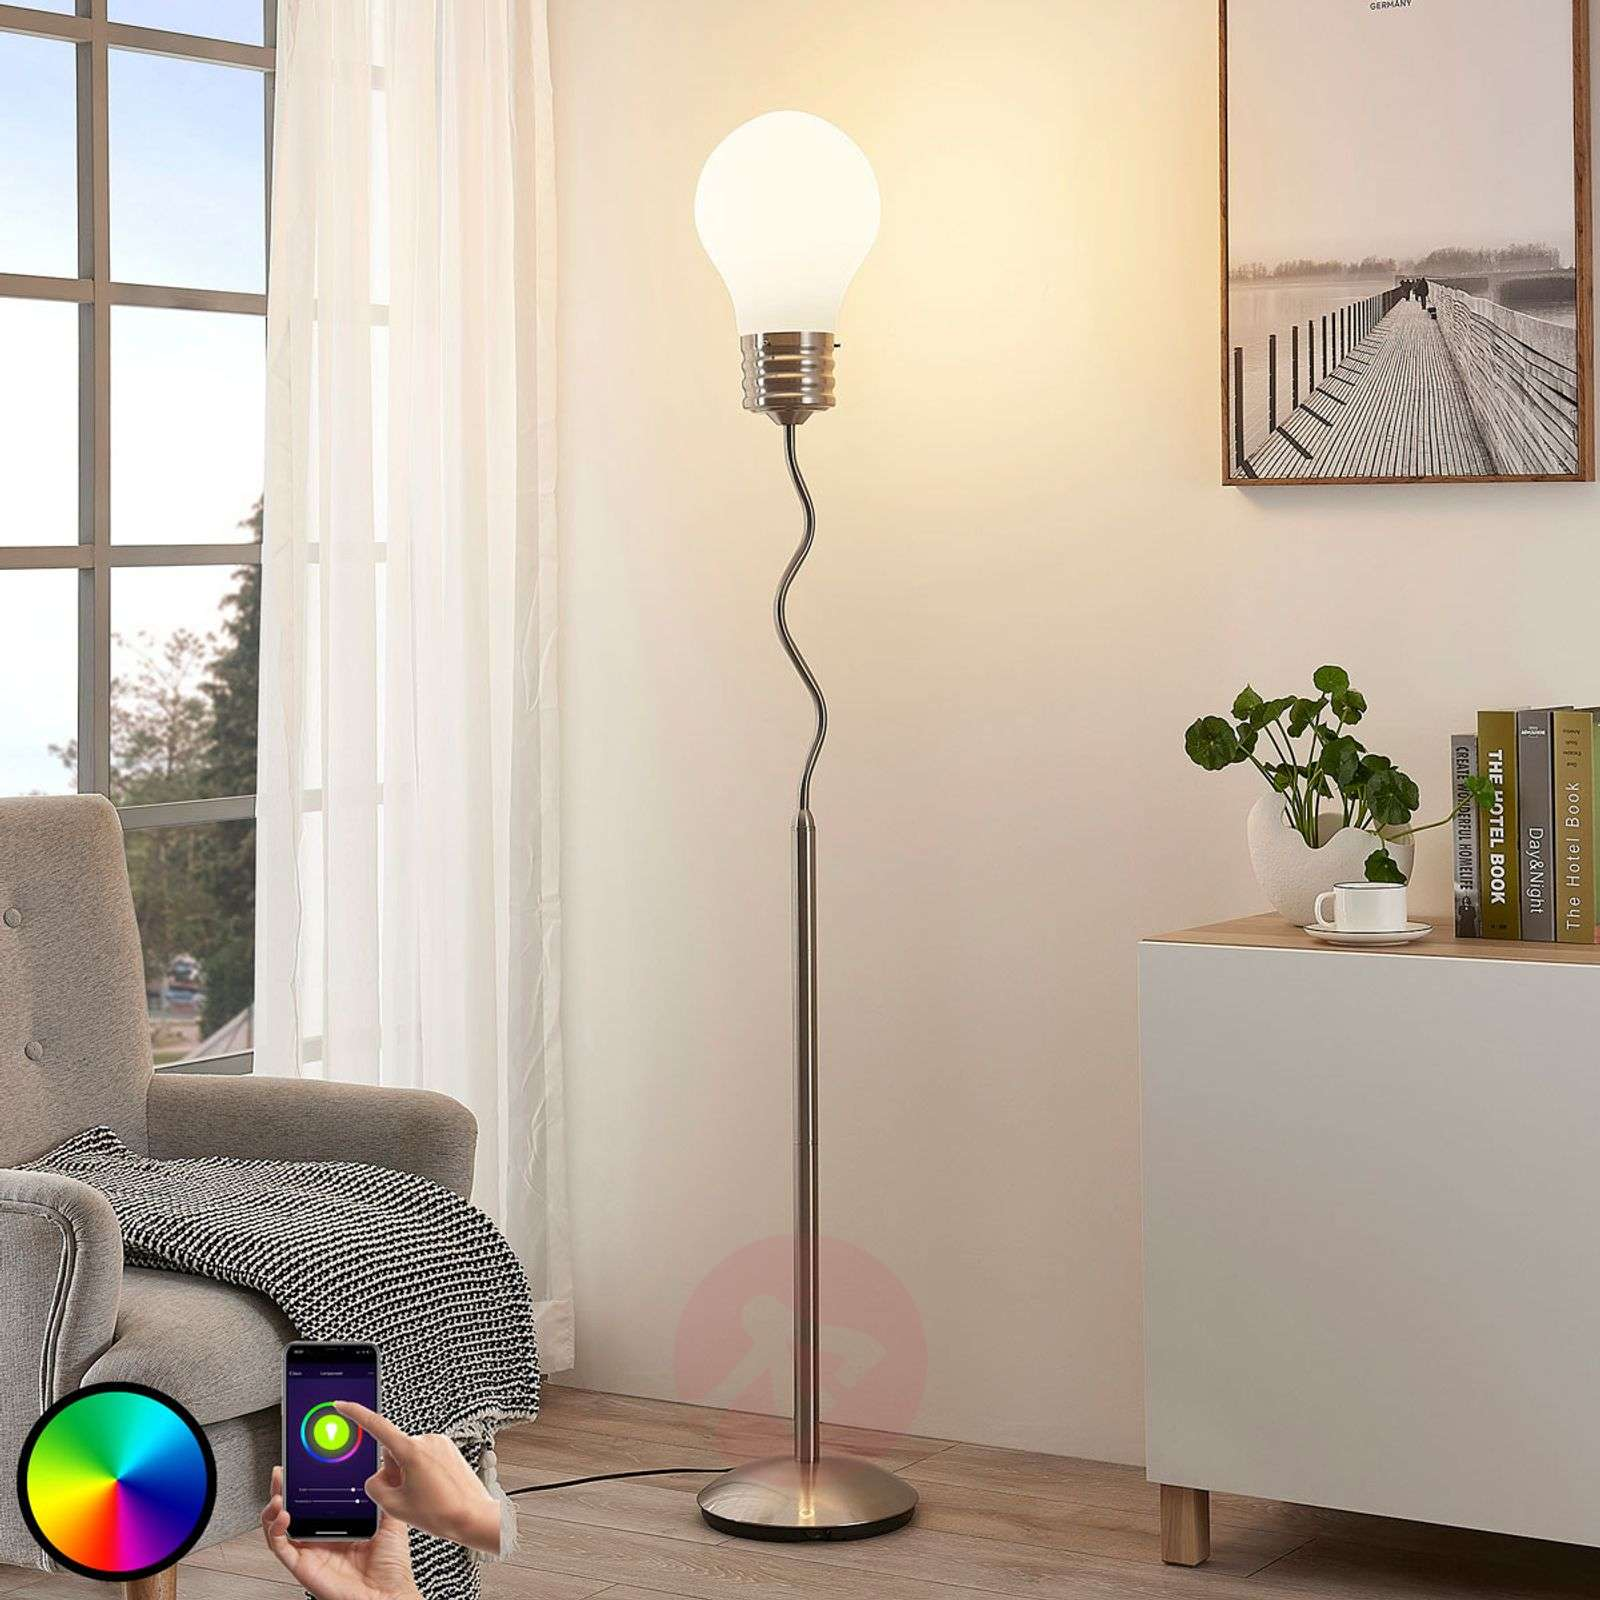 Lindby Smart RGB-LED-lattiavalaisin Mena-9624109-02